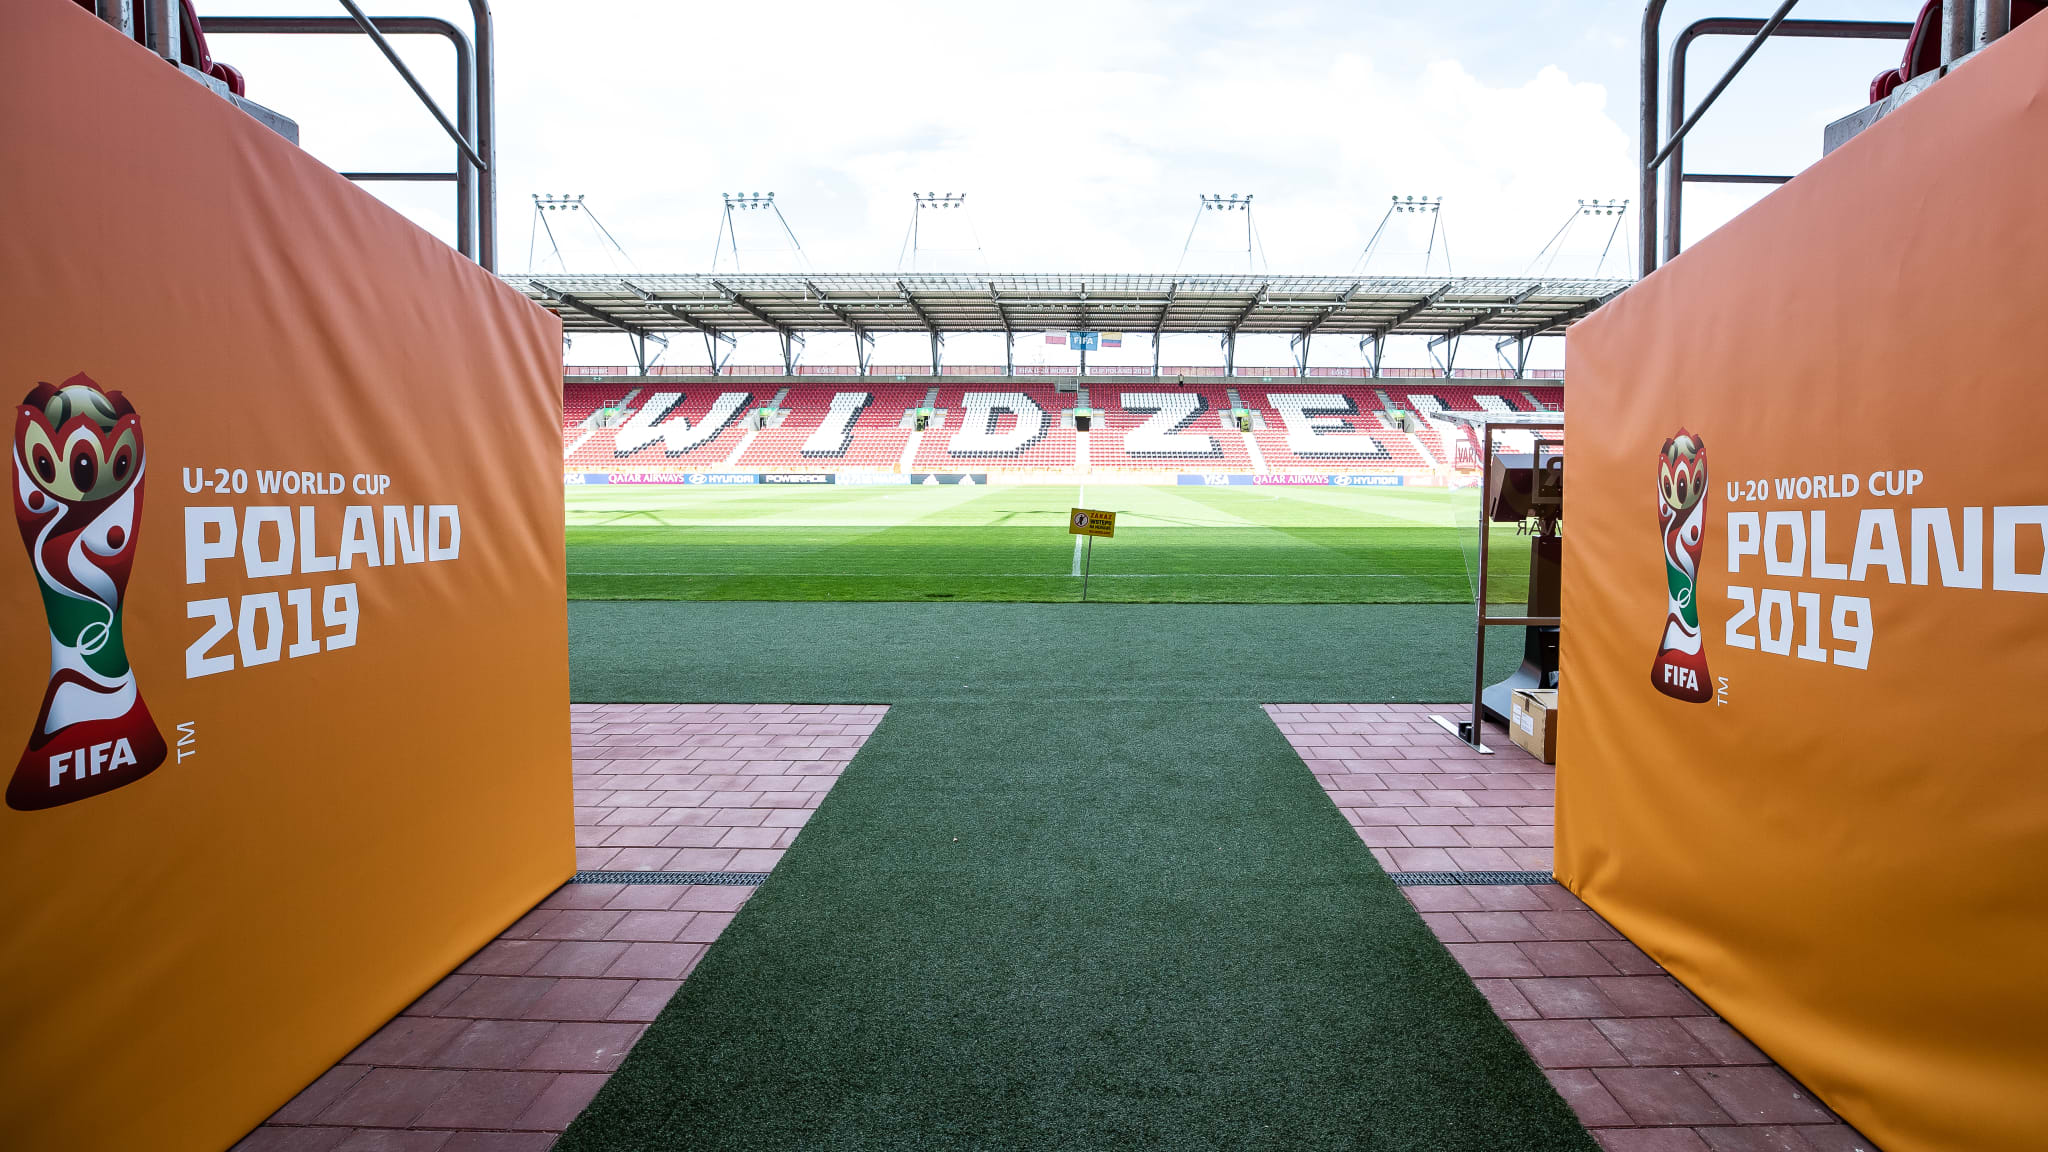 FIFA U 20 World Cup Poland 2019   News   Let the games begin at 2048x1152